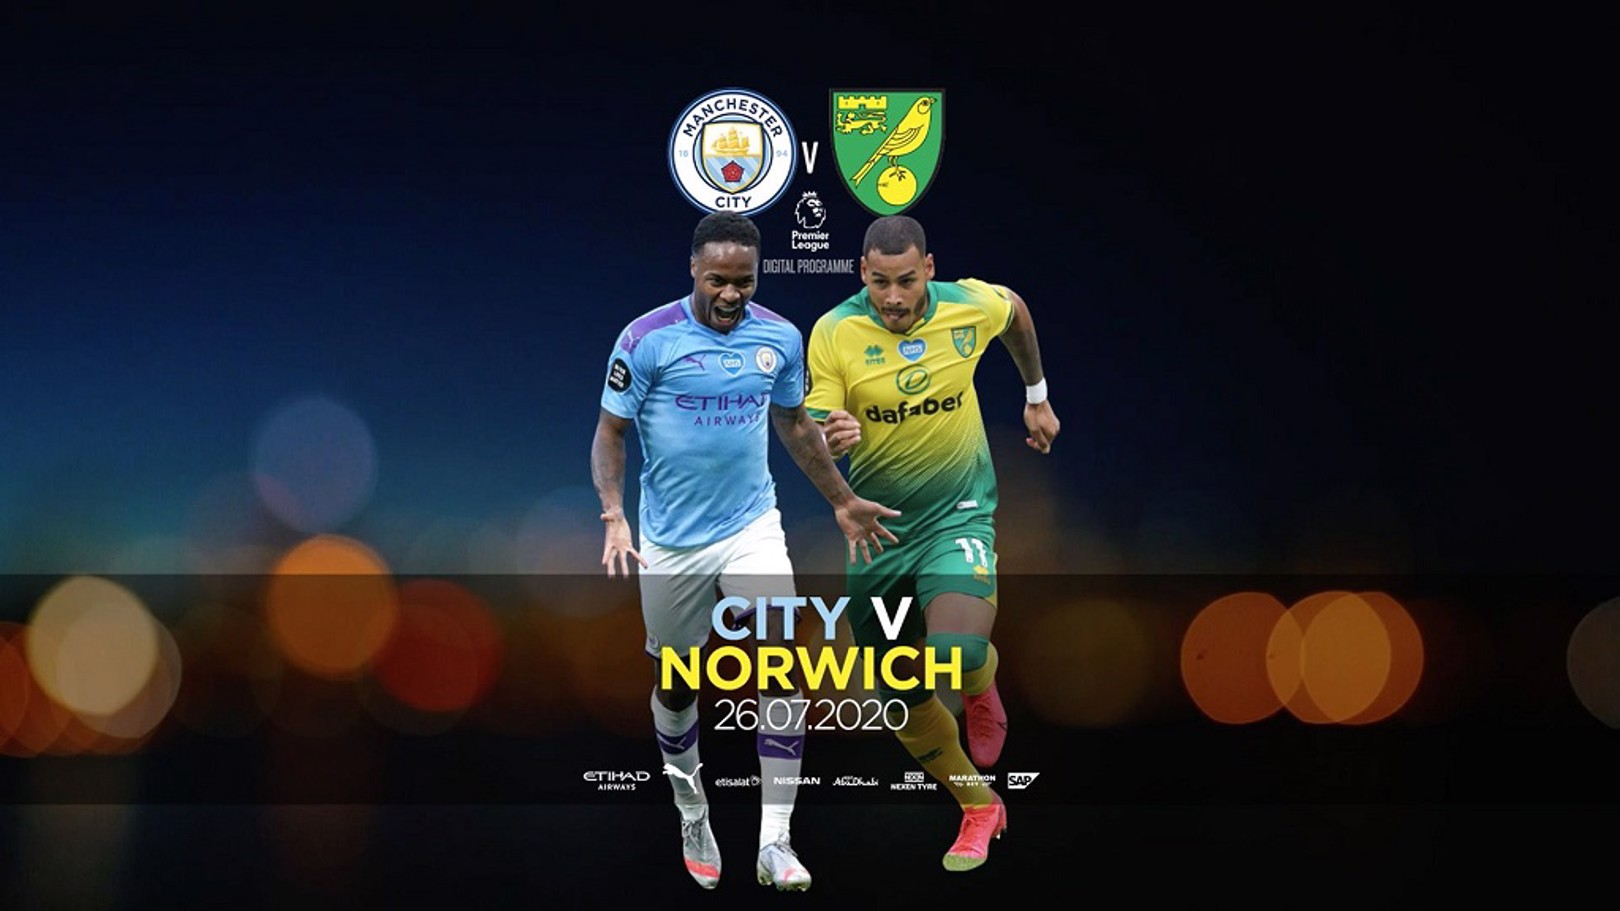 City v Norwich: Free digital matchday programme available now!